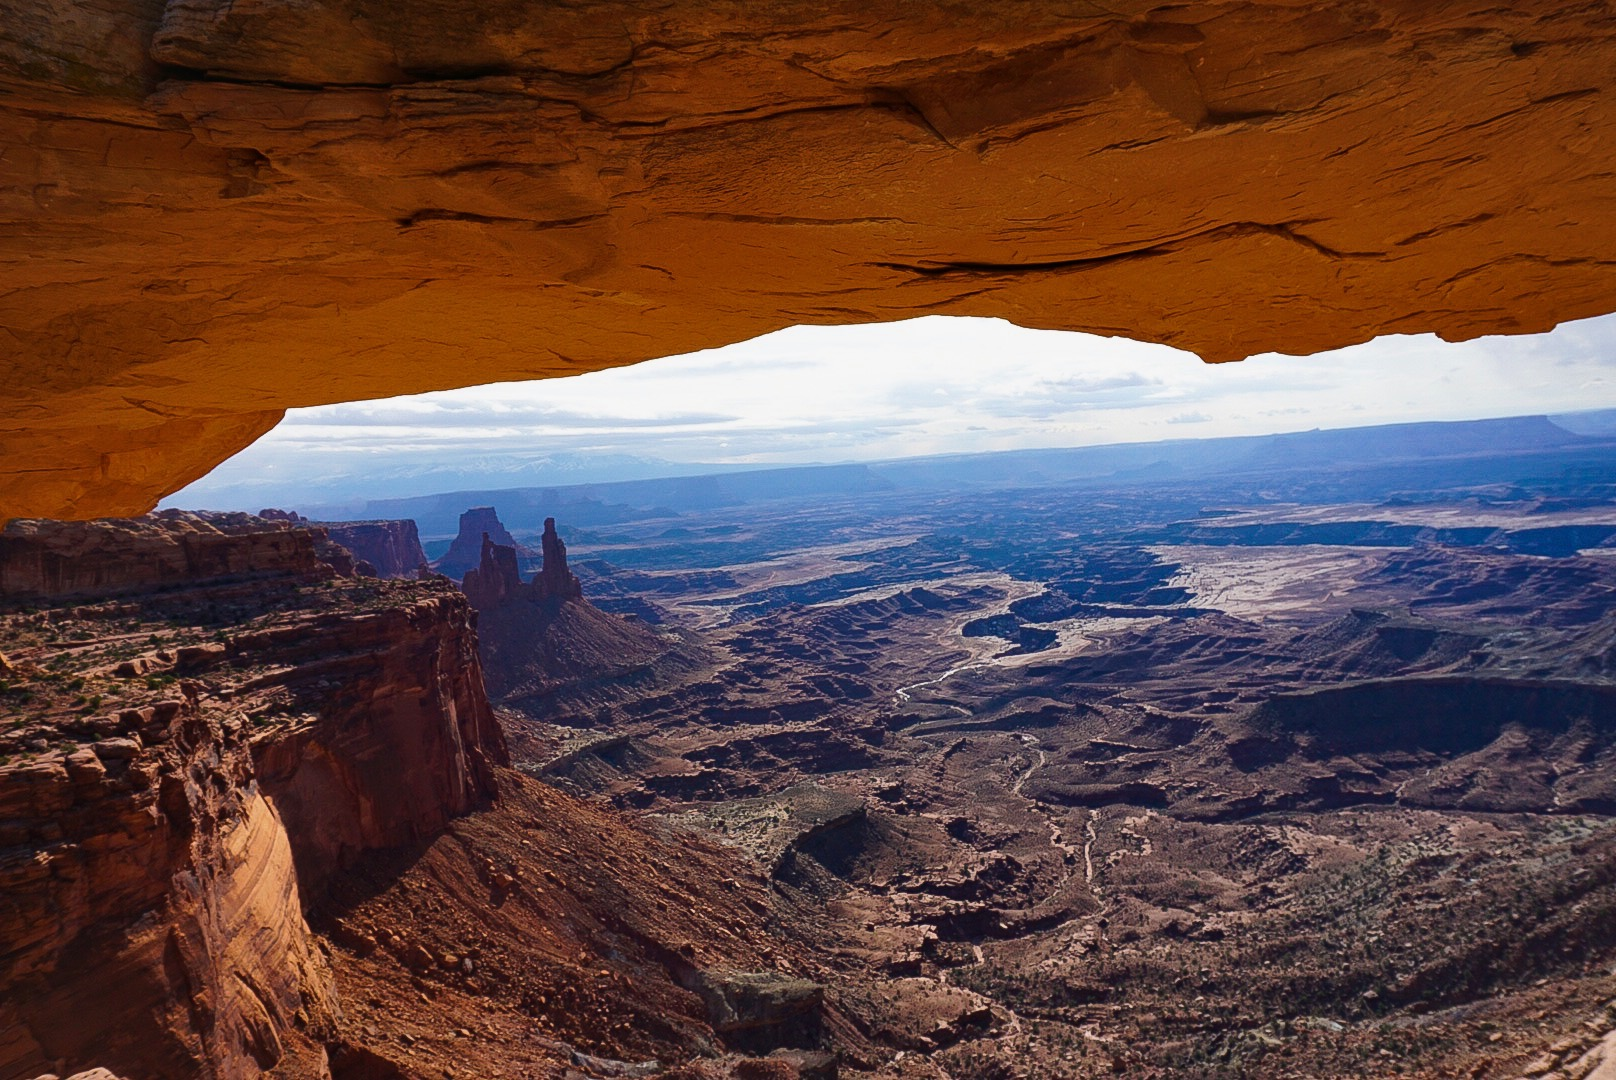 Mesa Arch in Needles District, Canyonlands National Park.